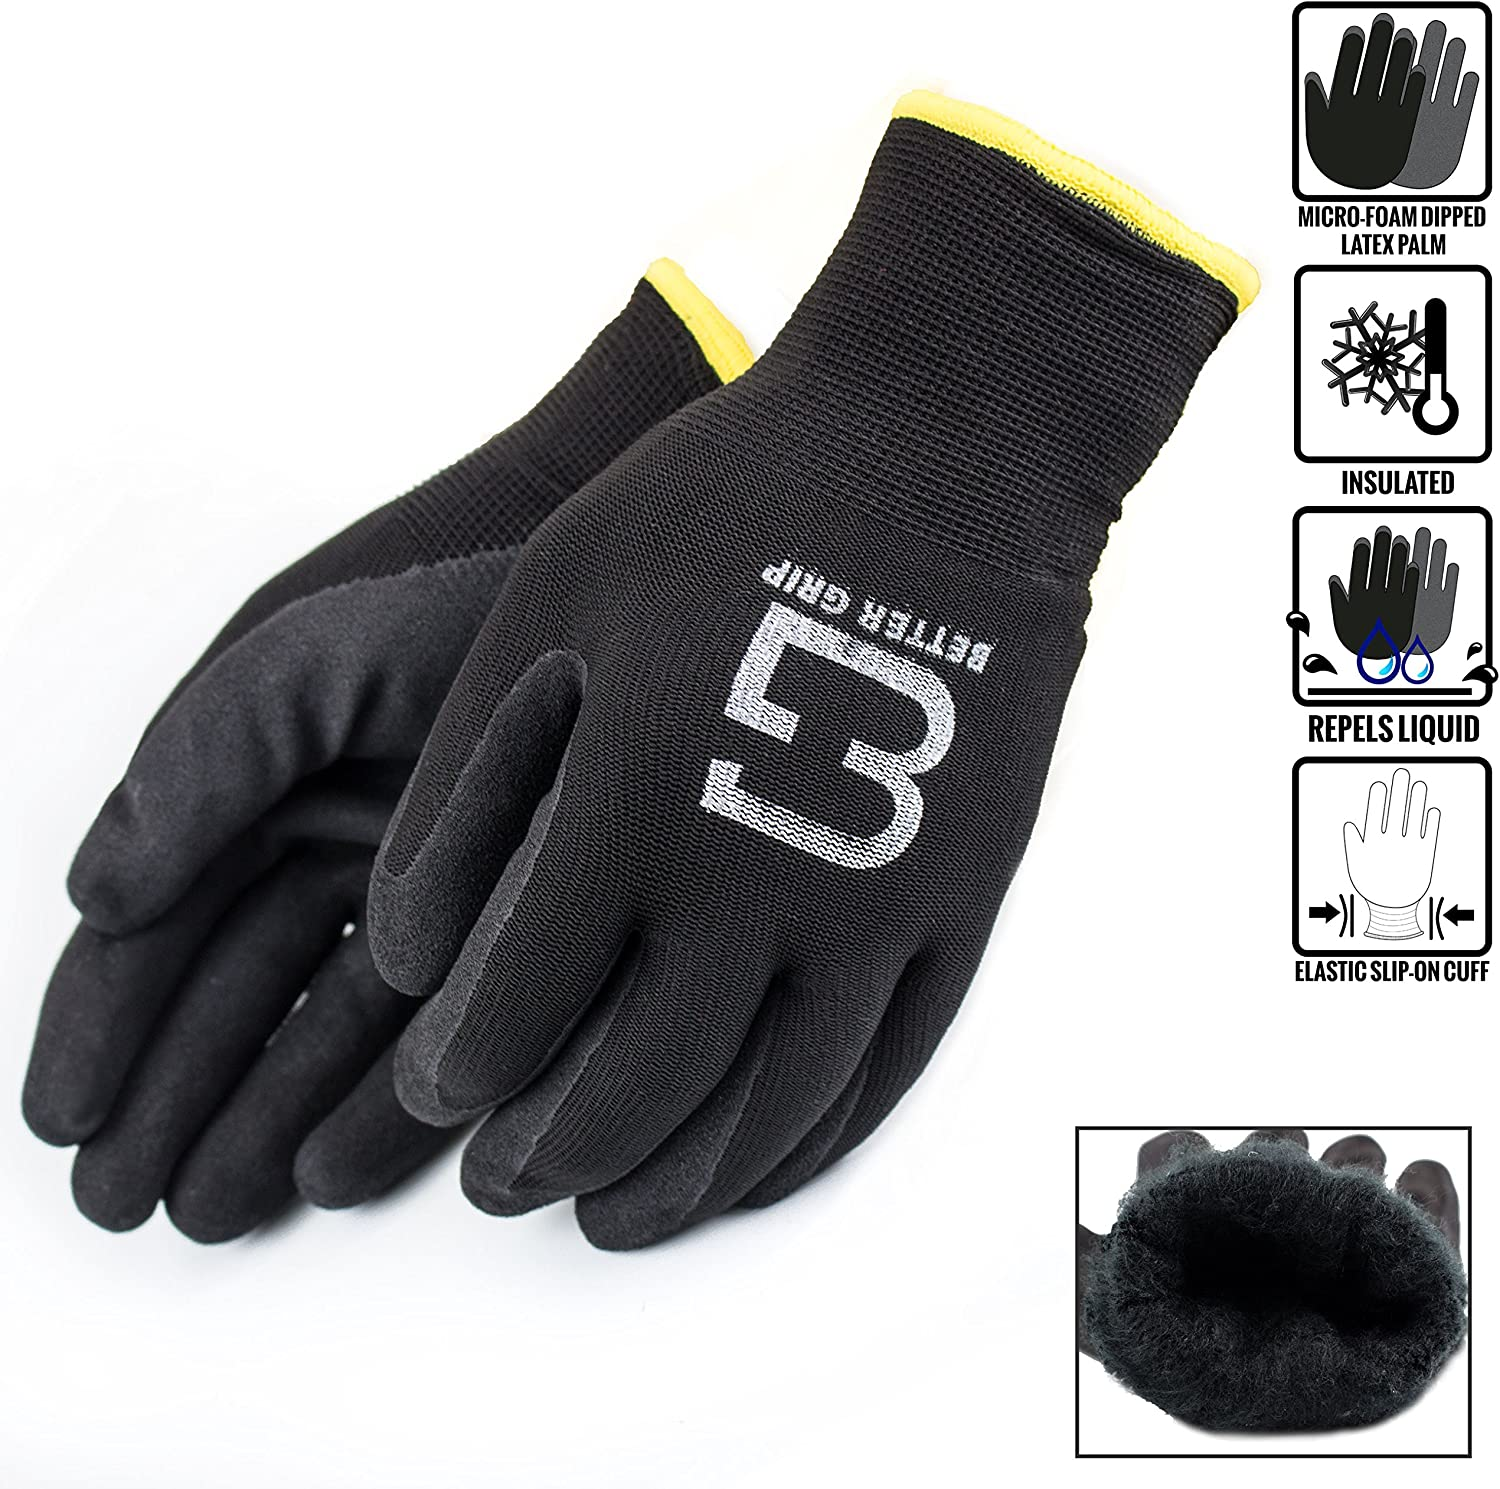 Better Grip BGWANS Safety Winter Insulated Double Lining Rubber Coated Work Gloves, 3 Pairs/Pack (Large, Black)